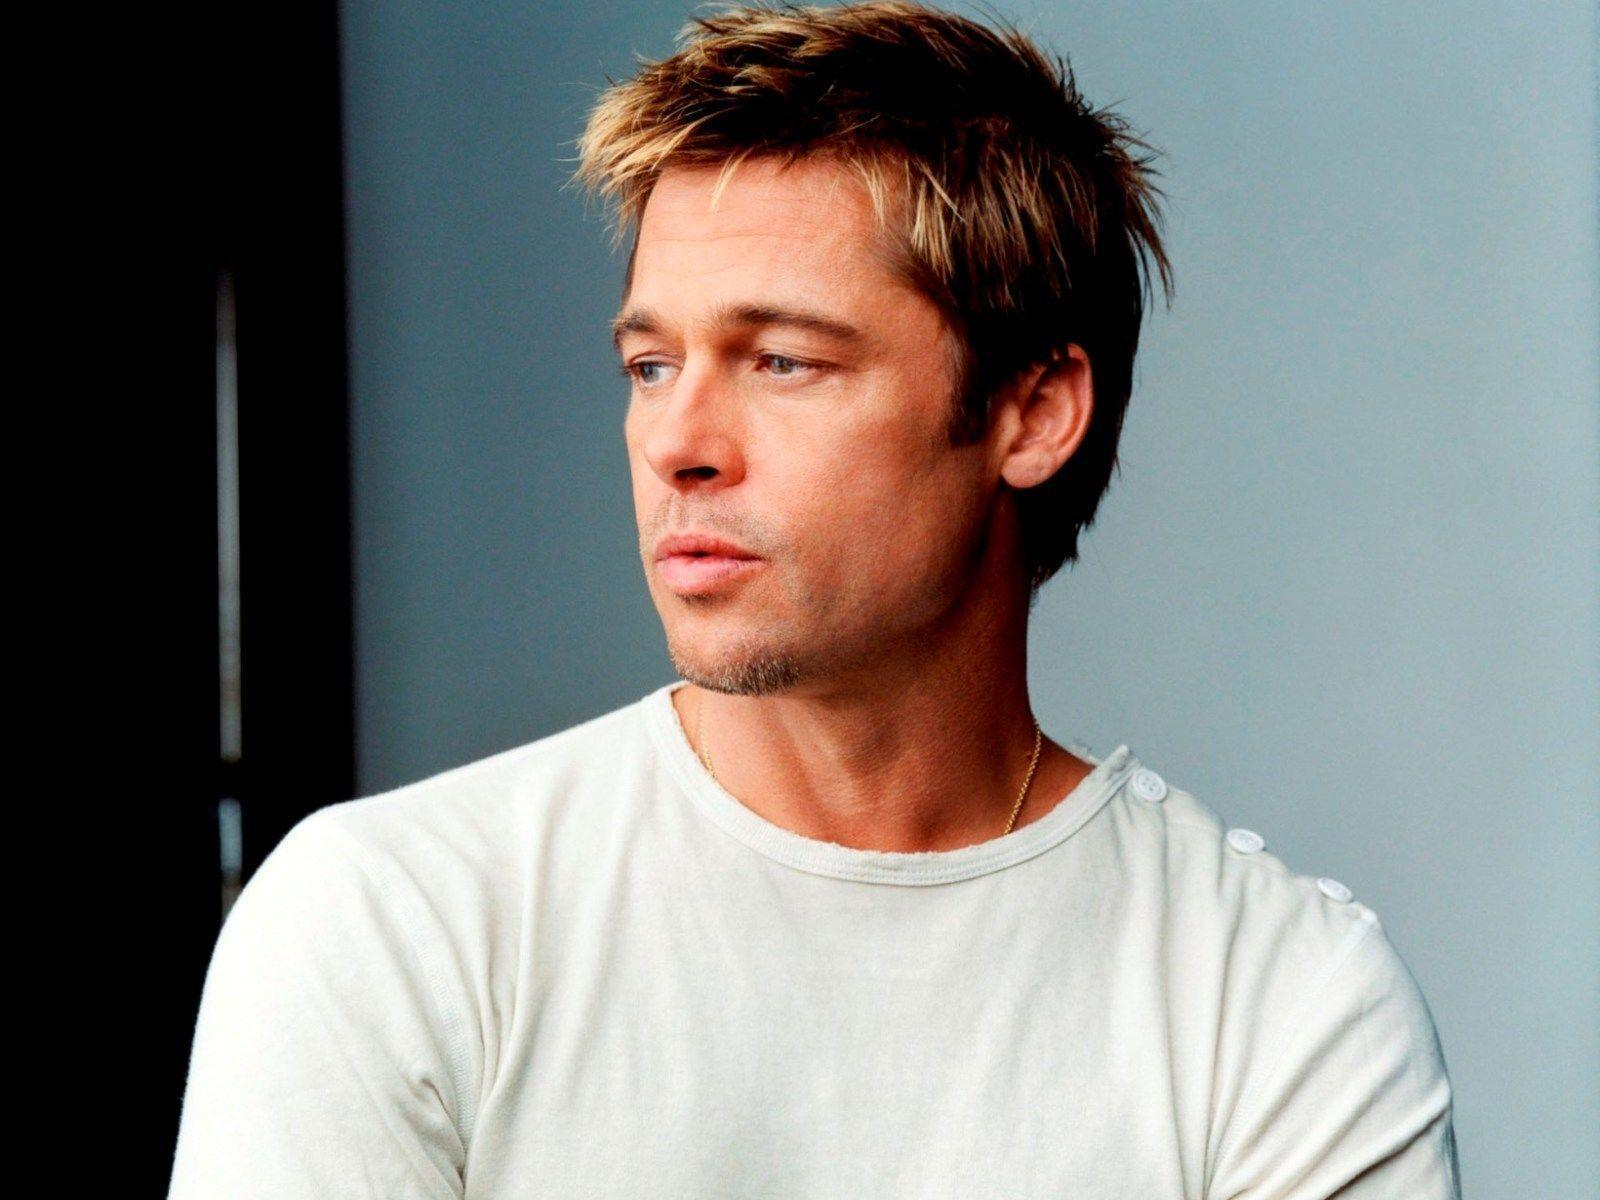 pitt - Brad Pitt Wallpaper (10613848) - Fanpop